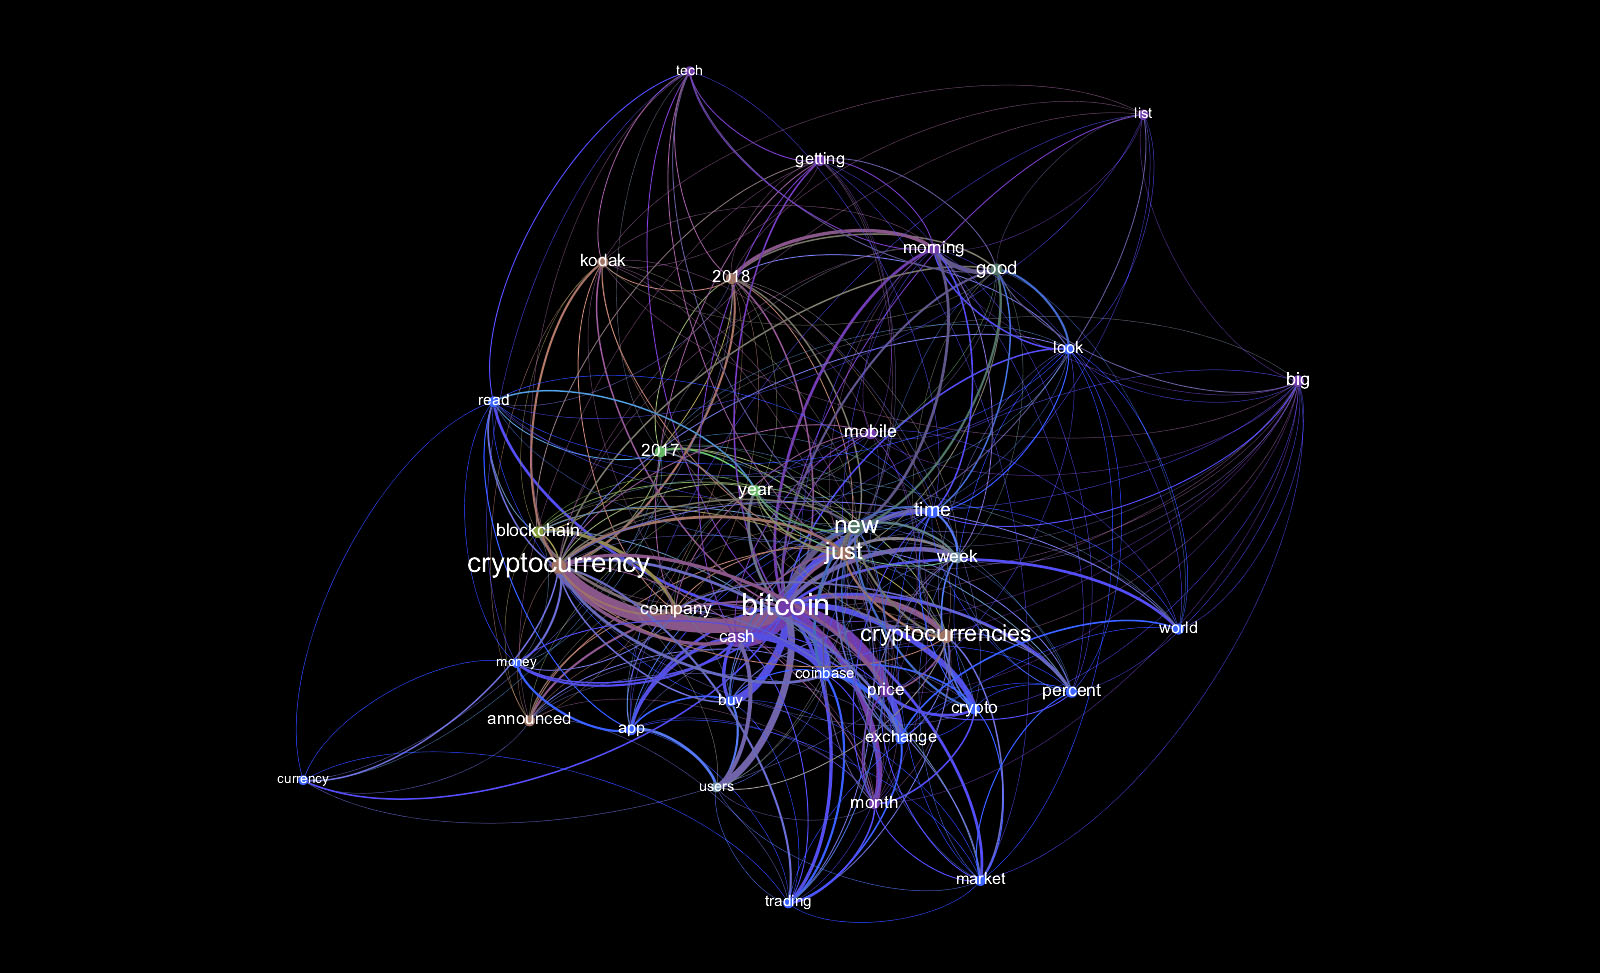 Visualisation with Gephi for Bitcoin terms on Financial Times